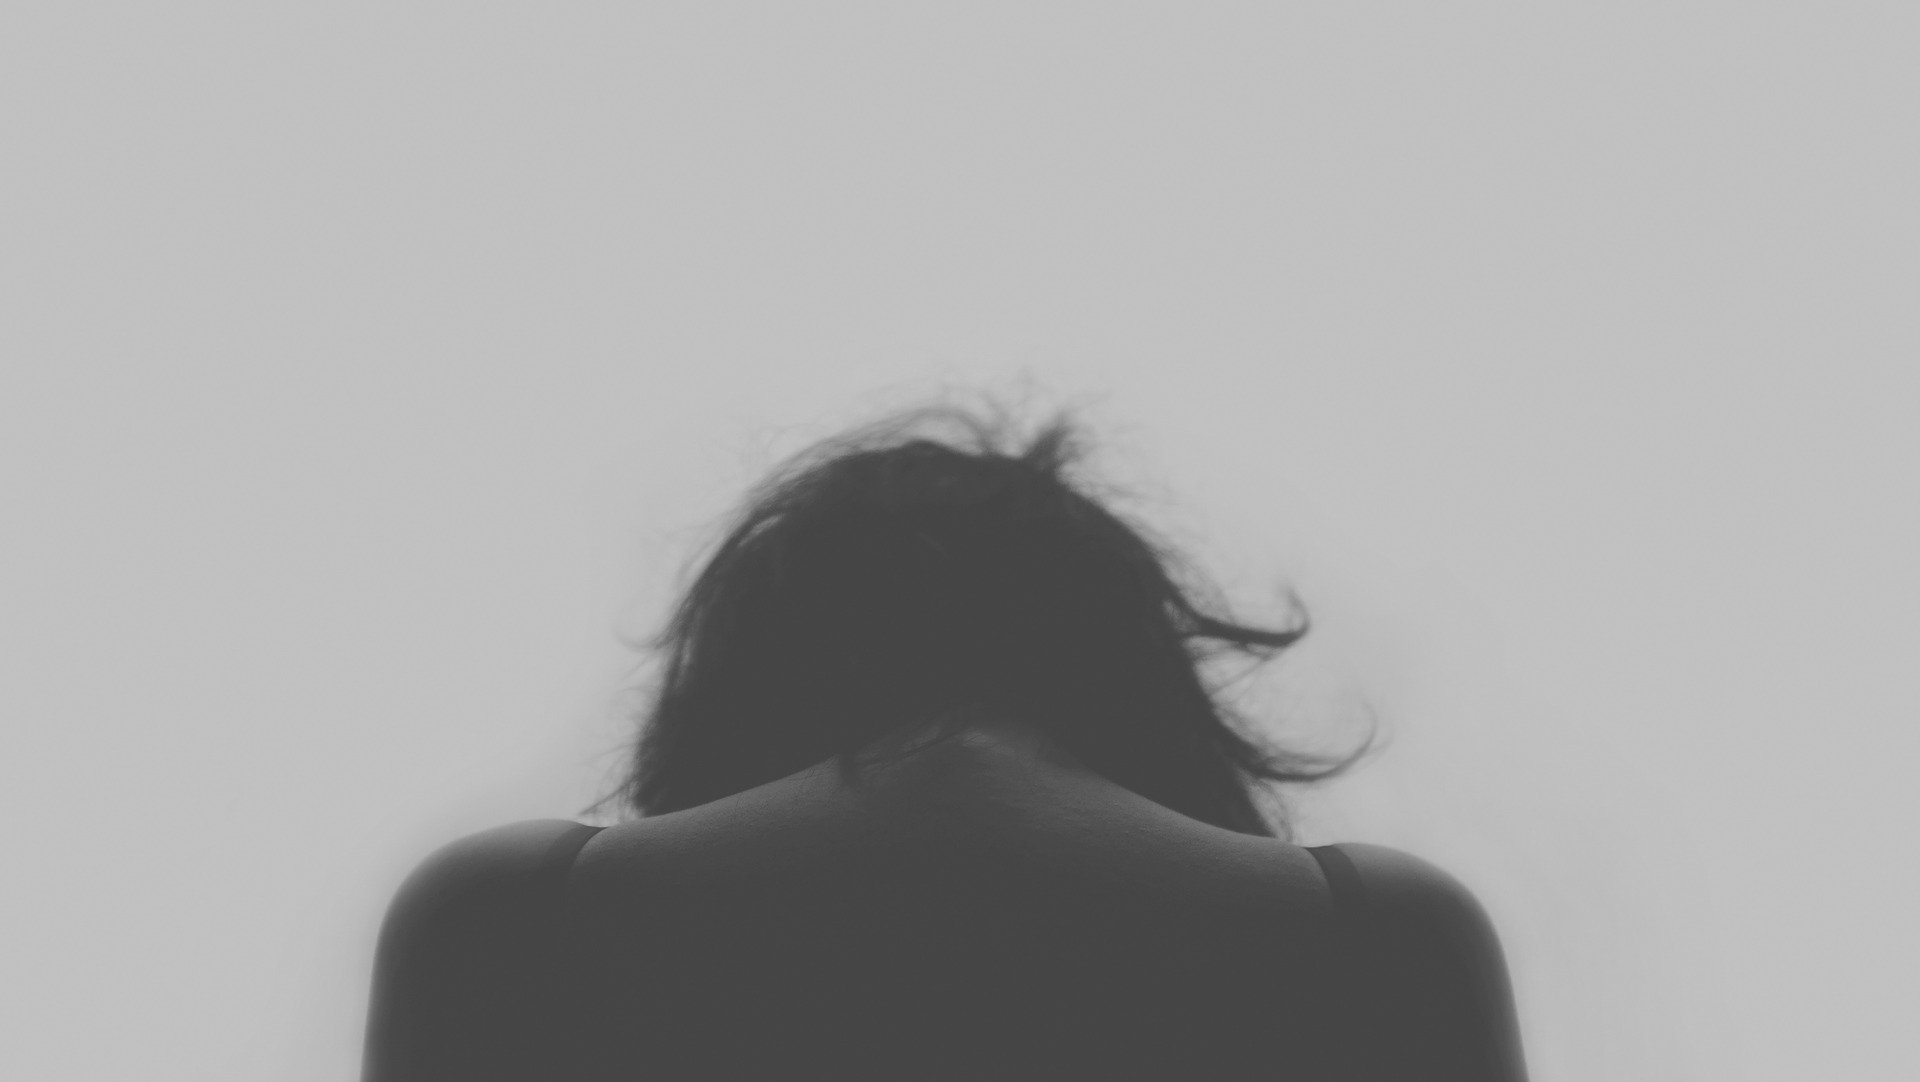 Black and white photo of a woman's head and shoulders from behind; she is looking down as if in pain